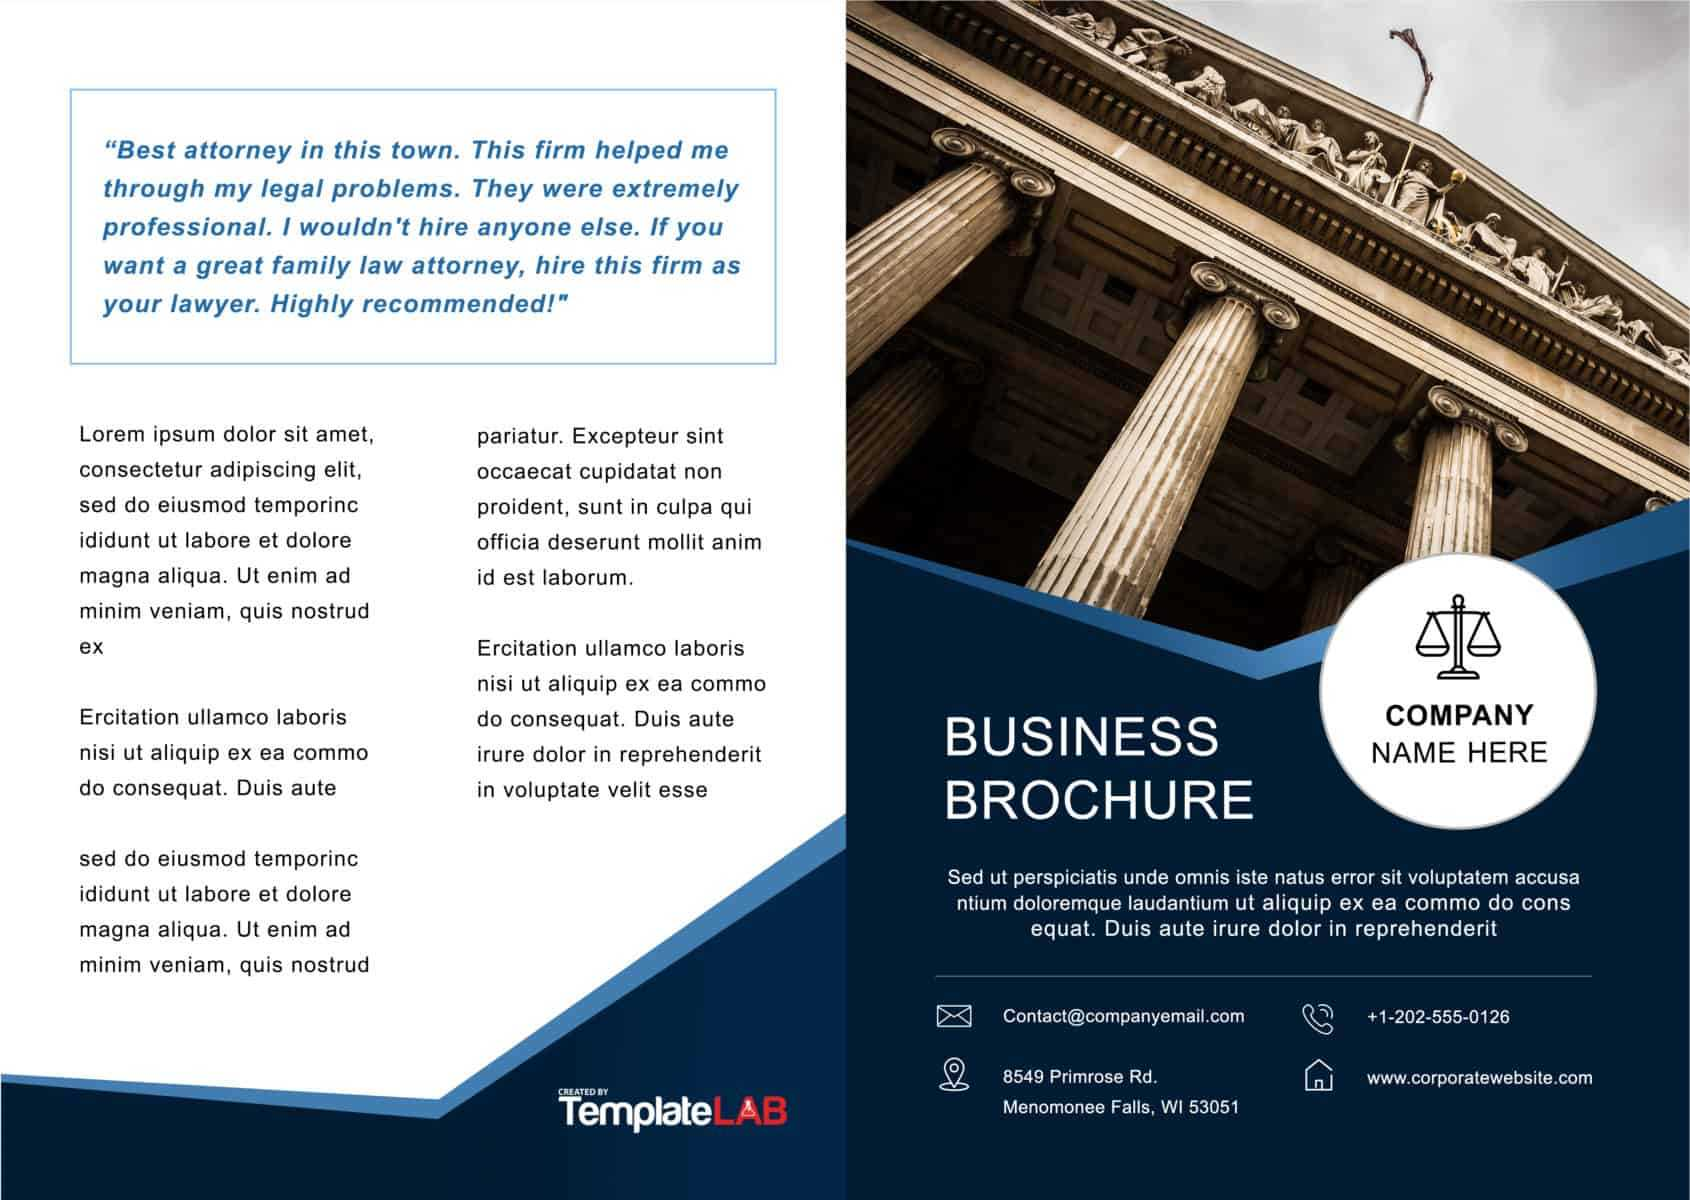 33 Free Brochure Templates (Word + Pdf) ᐅ Templatelab Throughout 4 Fold Brochure Template Word